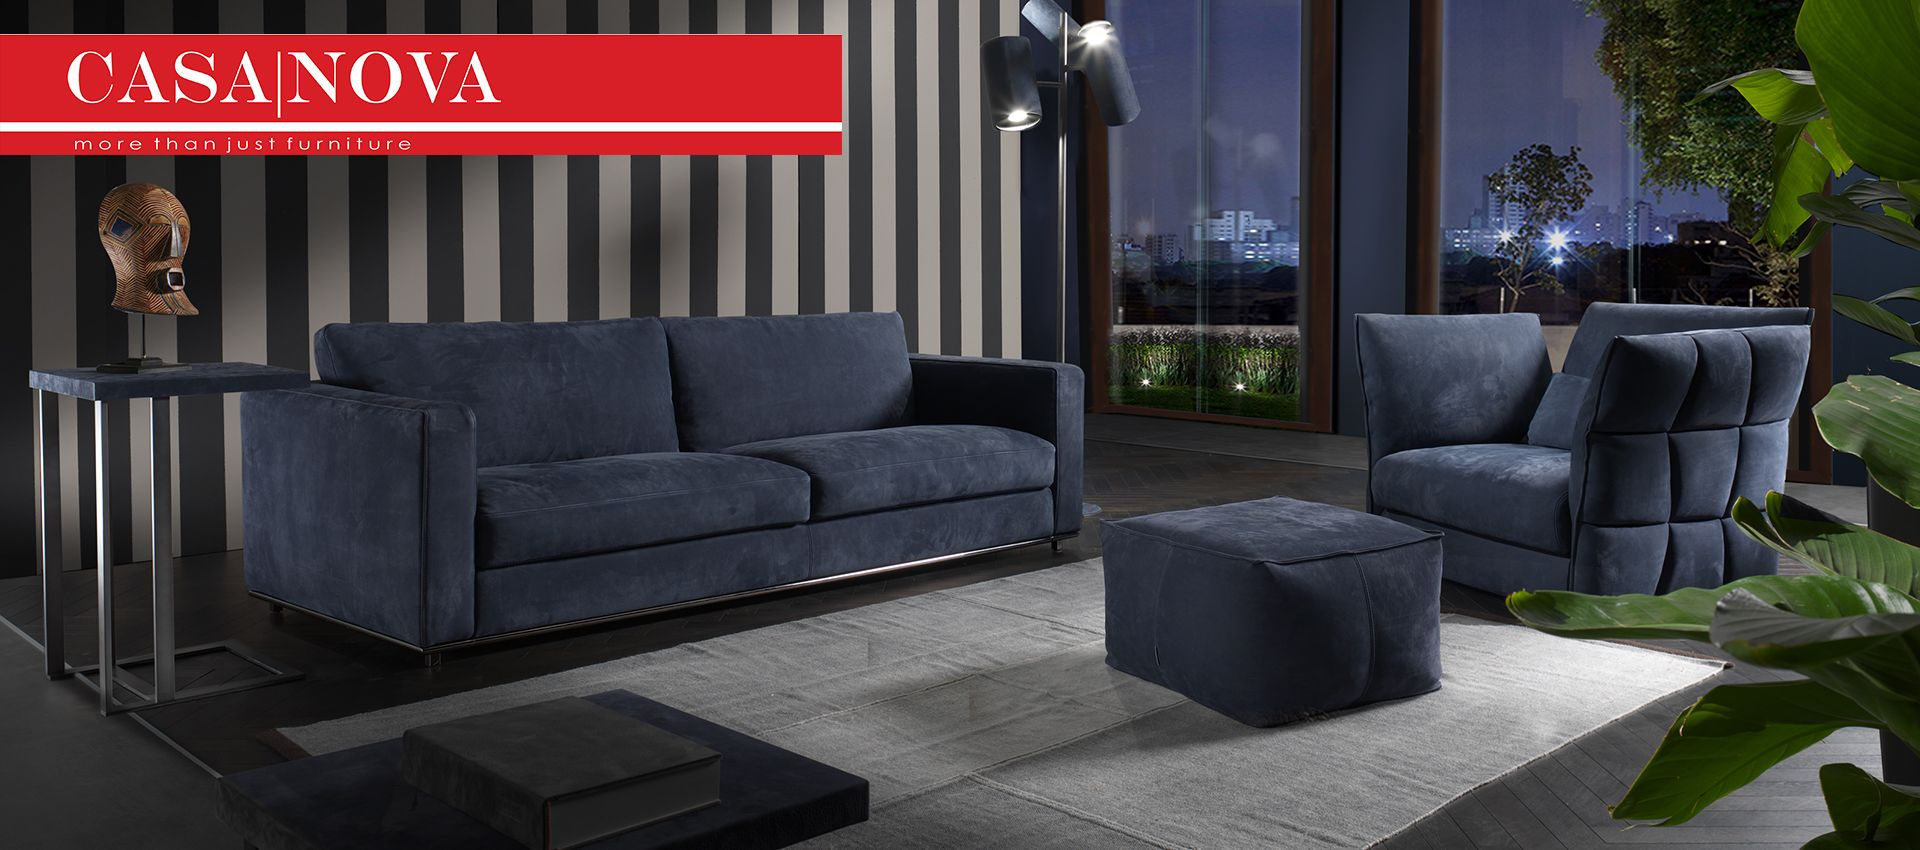 Classic And Never Out Of Fashion It Can Be Easily Placed In The Living Room Conquering The Hearts Of Those Who Buy It And Be Luxury Furniture Furniture Design